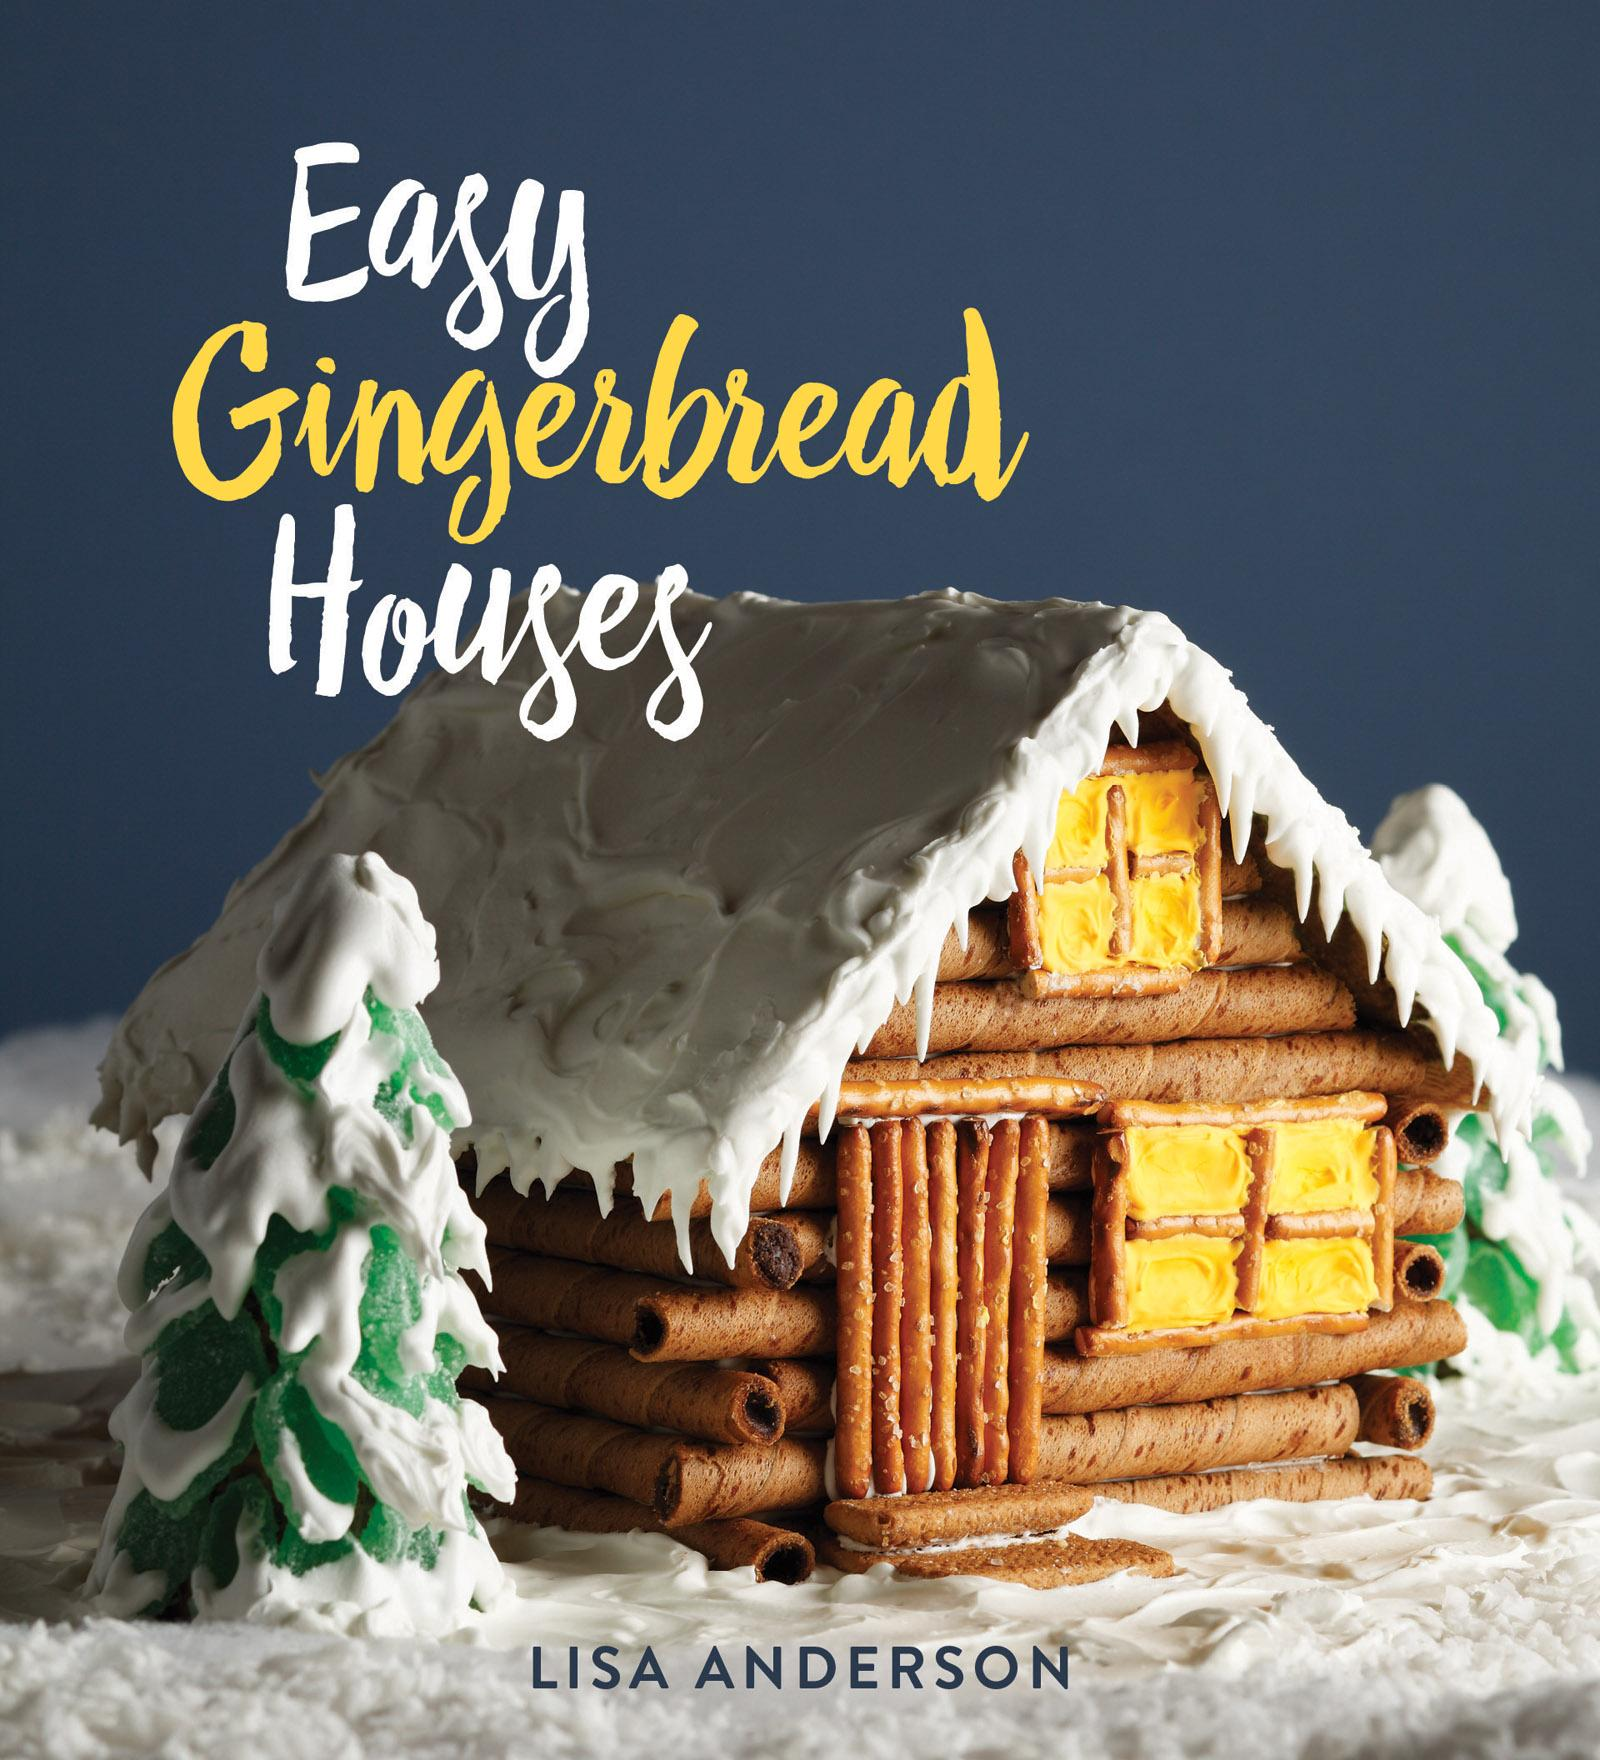 Easy Gingerbread Houses: Twenty-Three No-Bake Gingerbread Houses for All Seasons (Hardcover)